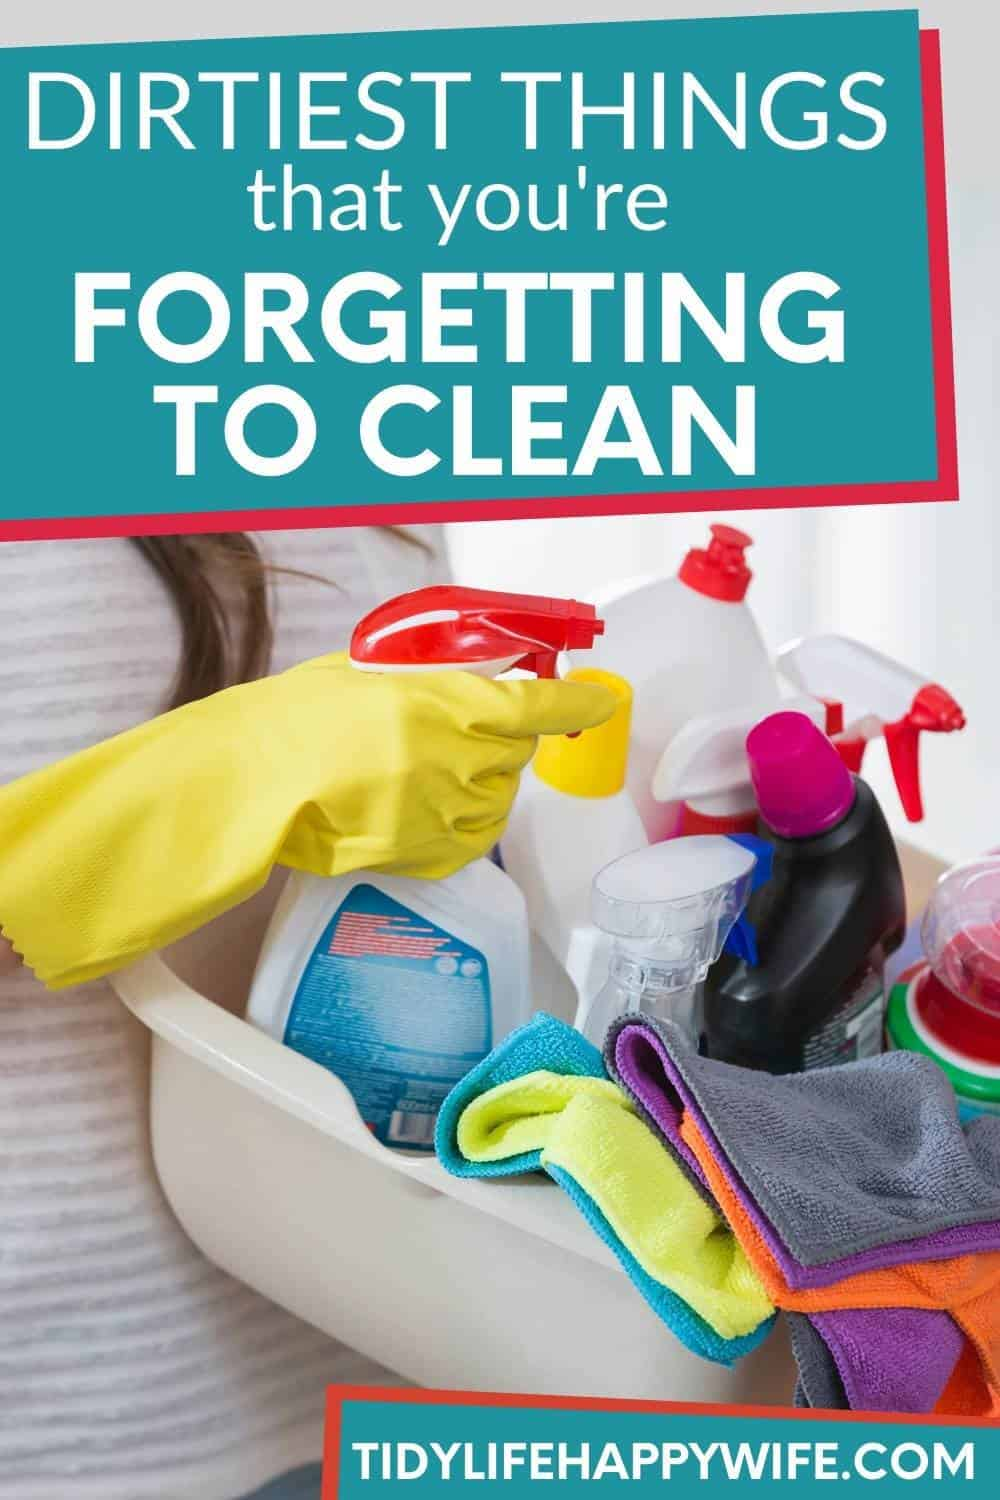 Oh, the things we forget to clean! You dusted, wiped the counters, and mopped the floors. You're certain you cleaned it all . . . But what if you didn't? People forget to do things all the time. You don't want to worry that your guest will find a spot in your bathroom or kitchen that you forgot to clean. Check out the dirtiest places most people forget to clean. If you find a couple you're not cleaning, add them to your regular cleaning routine so you don't have to worry anymore. via @Tidylifehappywife